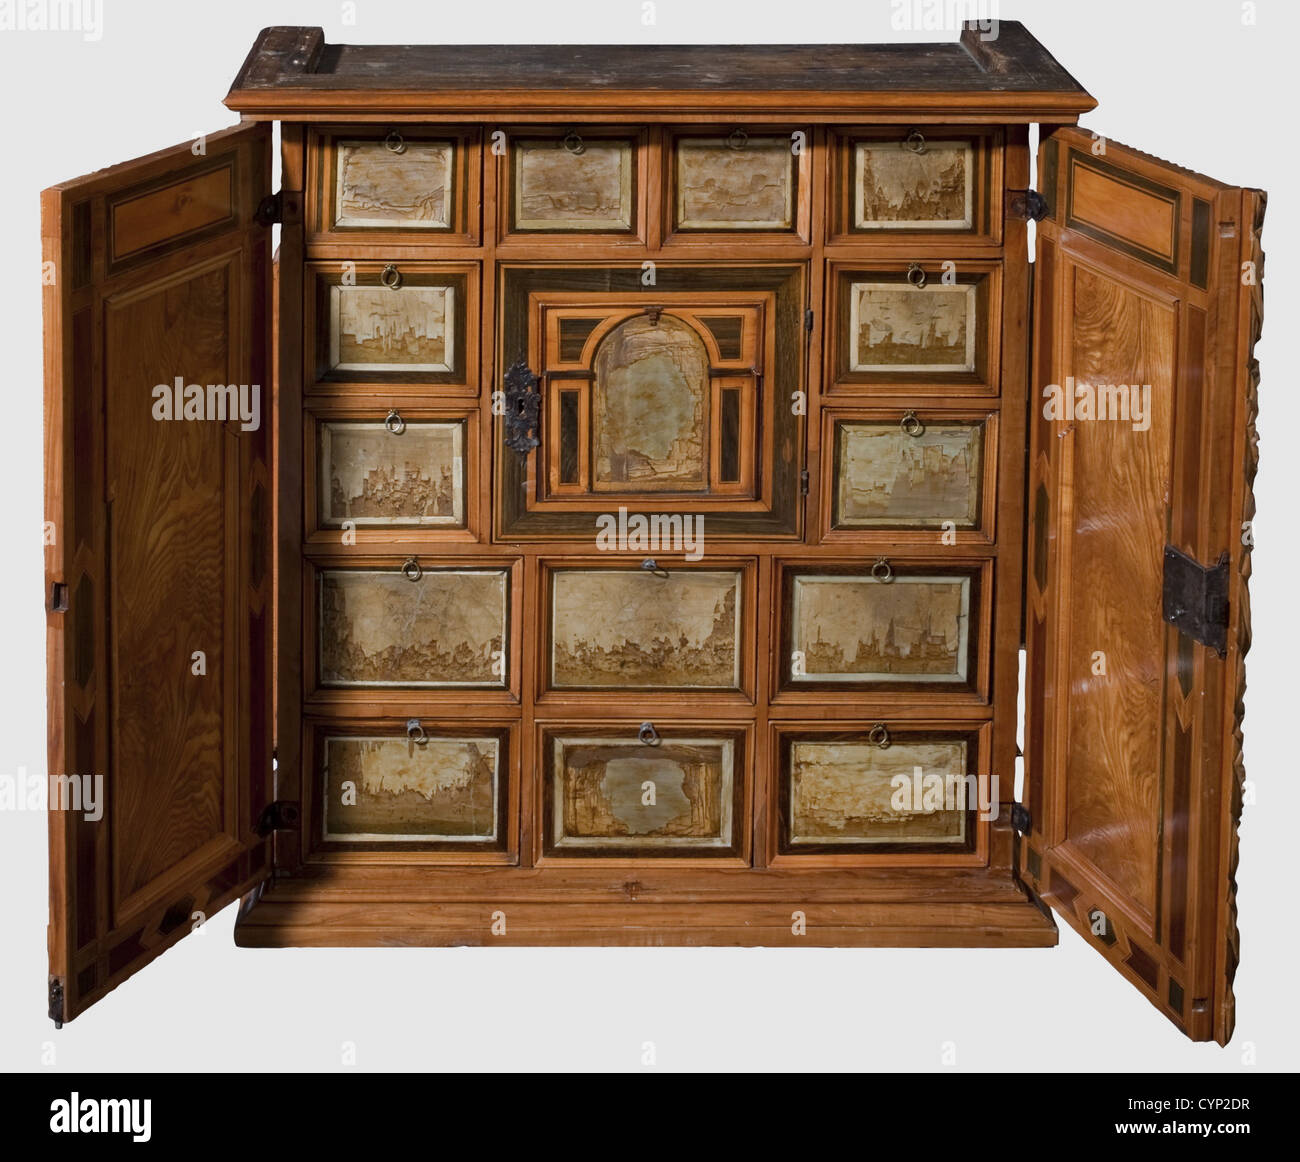 Used Kitchen Cabinets Ma: Graining Stock Photos & Graining Stock Images